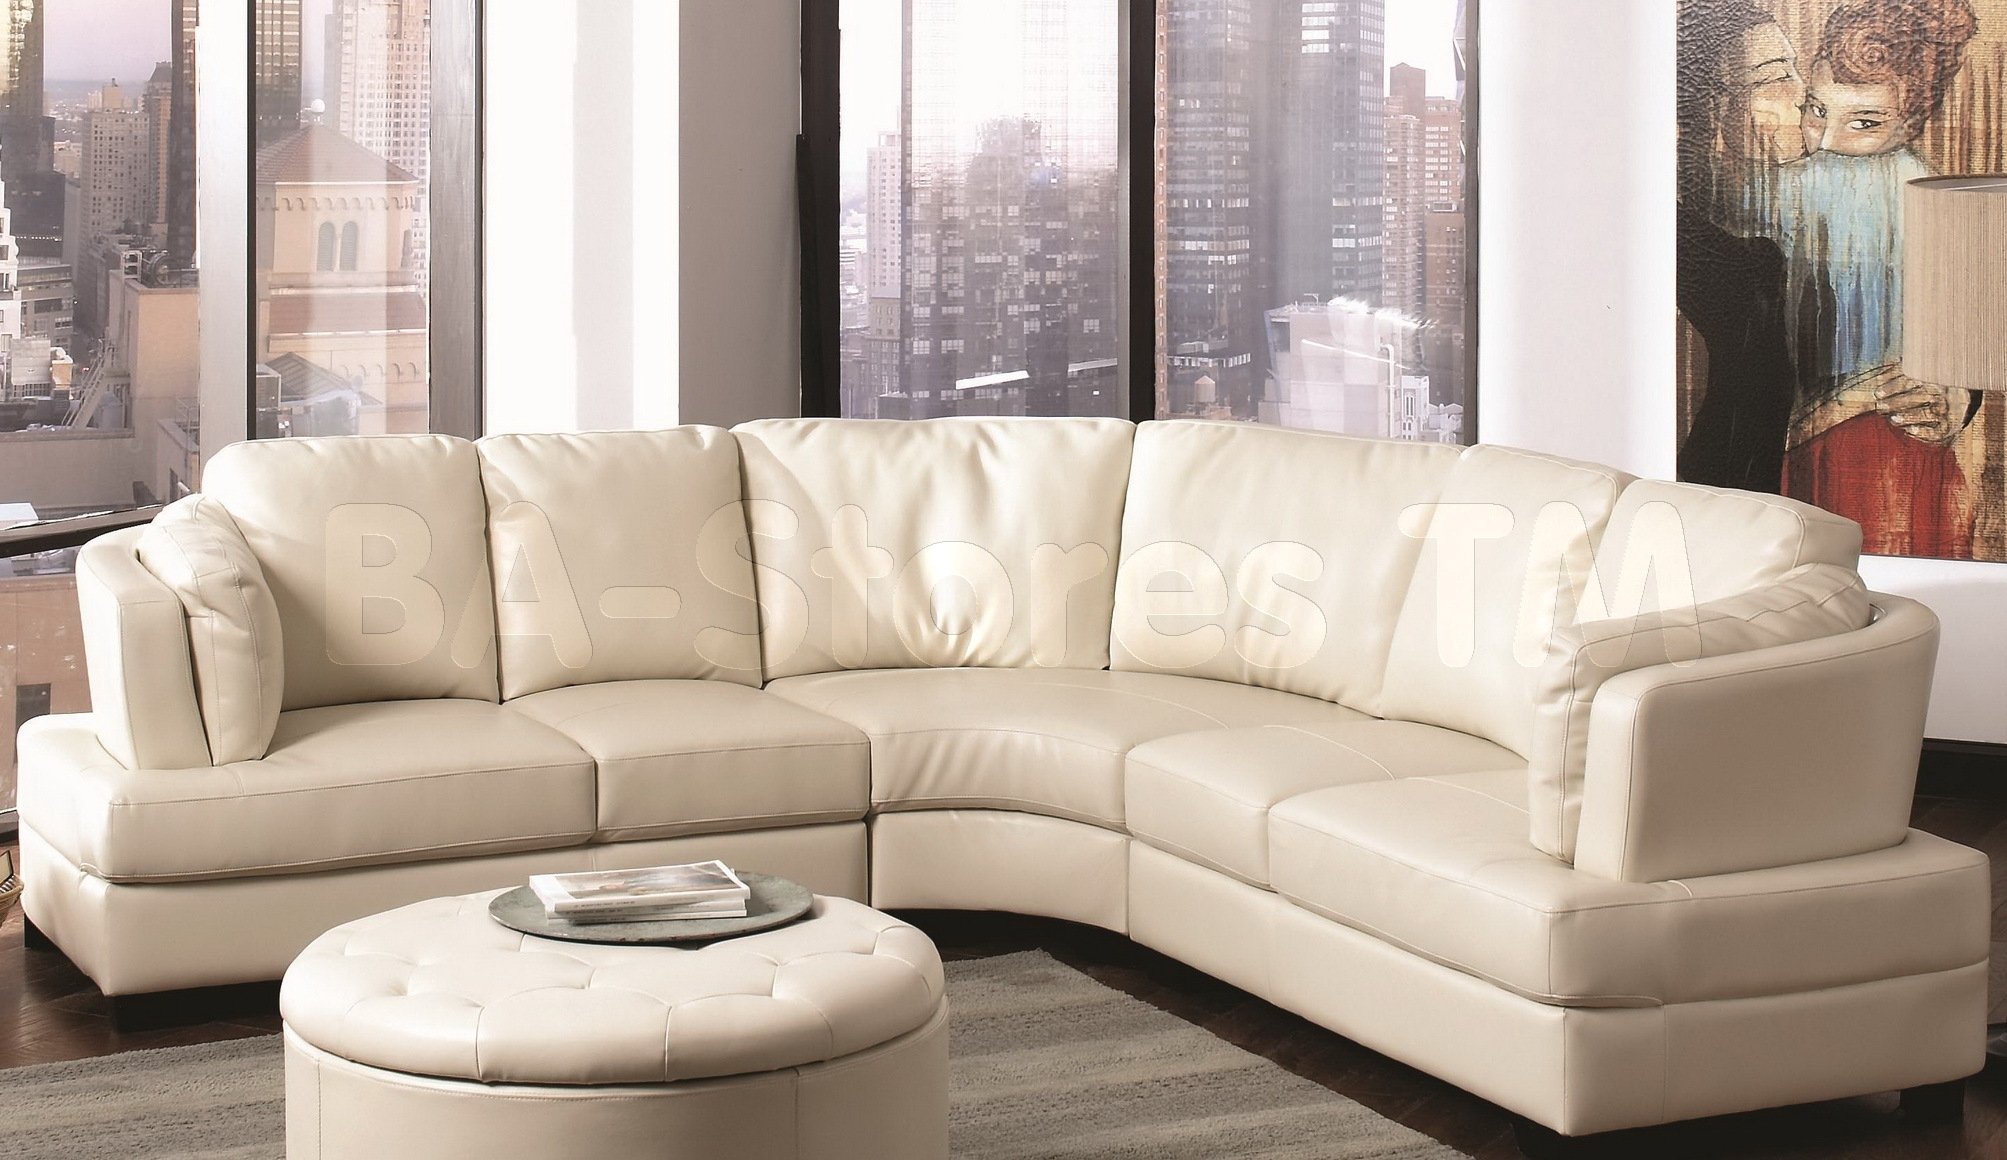 Furniture: Using Pretty Cheap Sectional Sofas Under 300 For Amusing Within Tallahassee Sectional Sofas (Image 9 of 10)